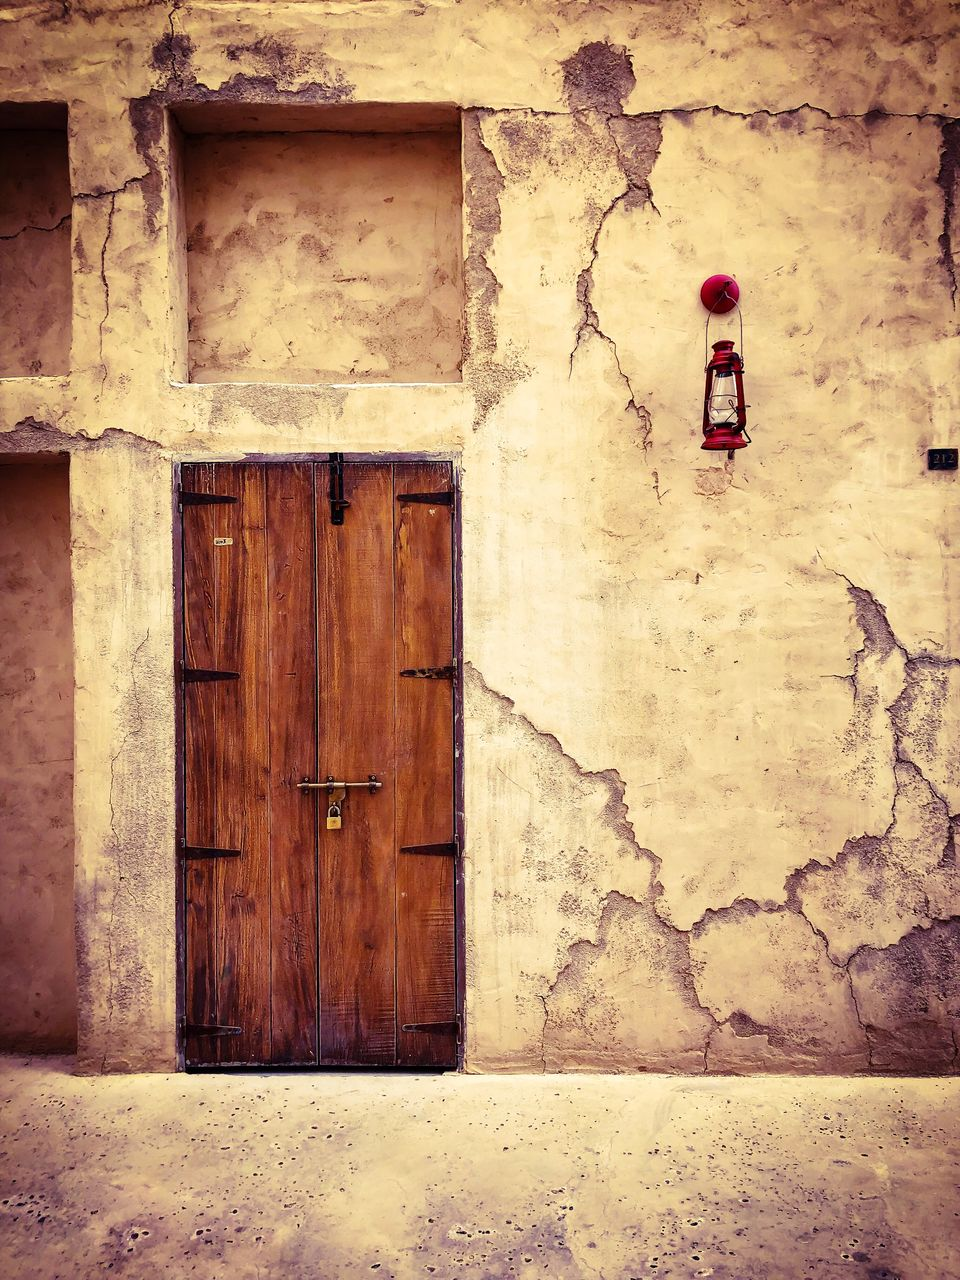 building exterior, architecture, built structure, entrance, door, safety, security, protection, wall - building feature, no people, closed, building, day, wood - material, outdoors, old, house, red, weathered, wall